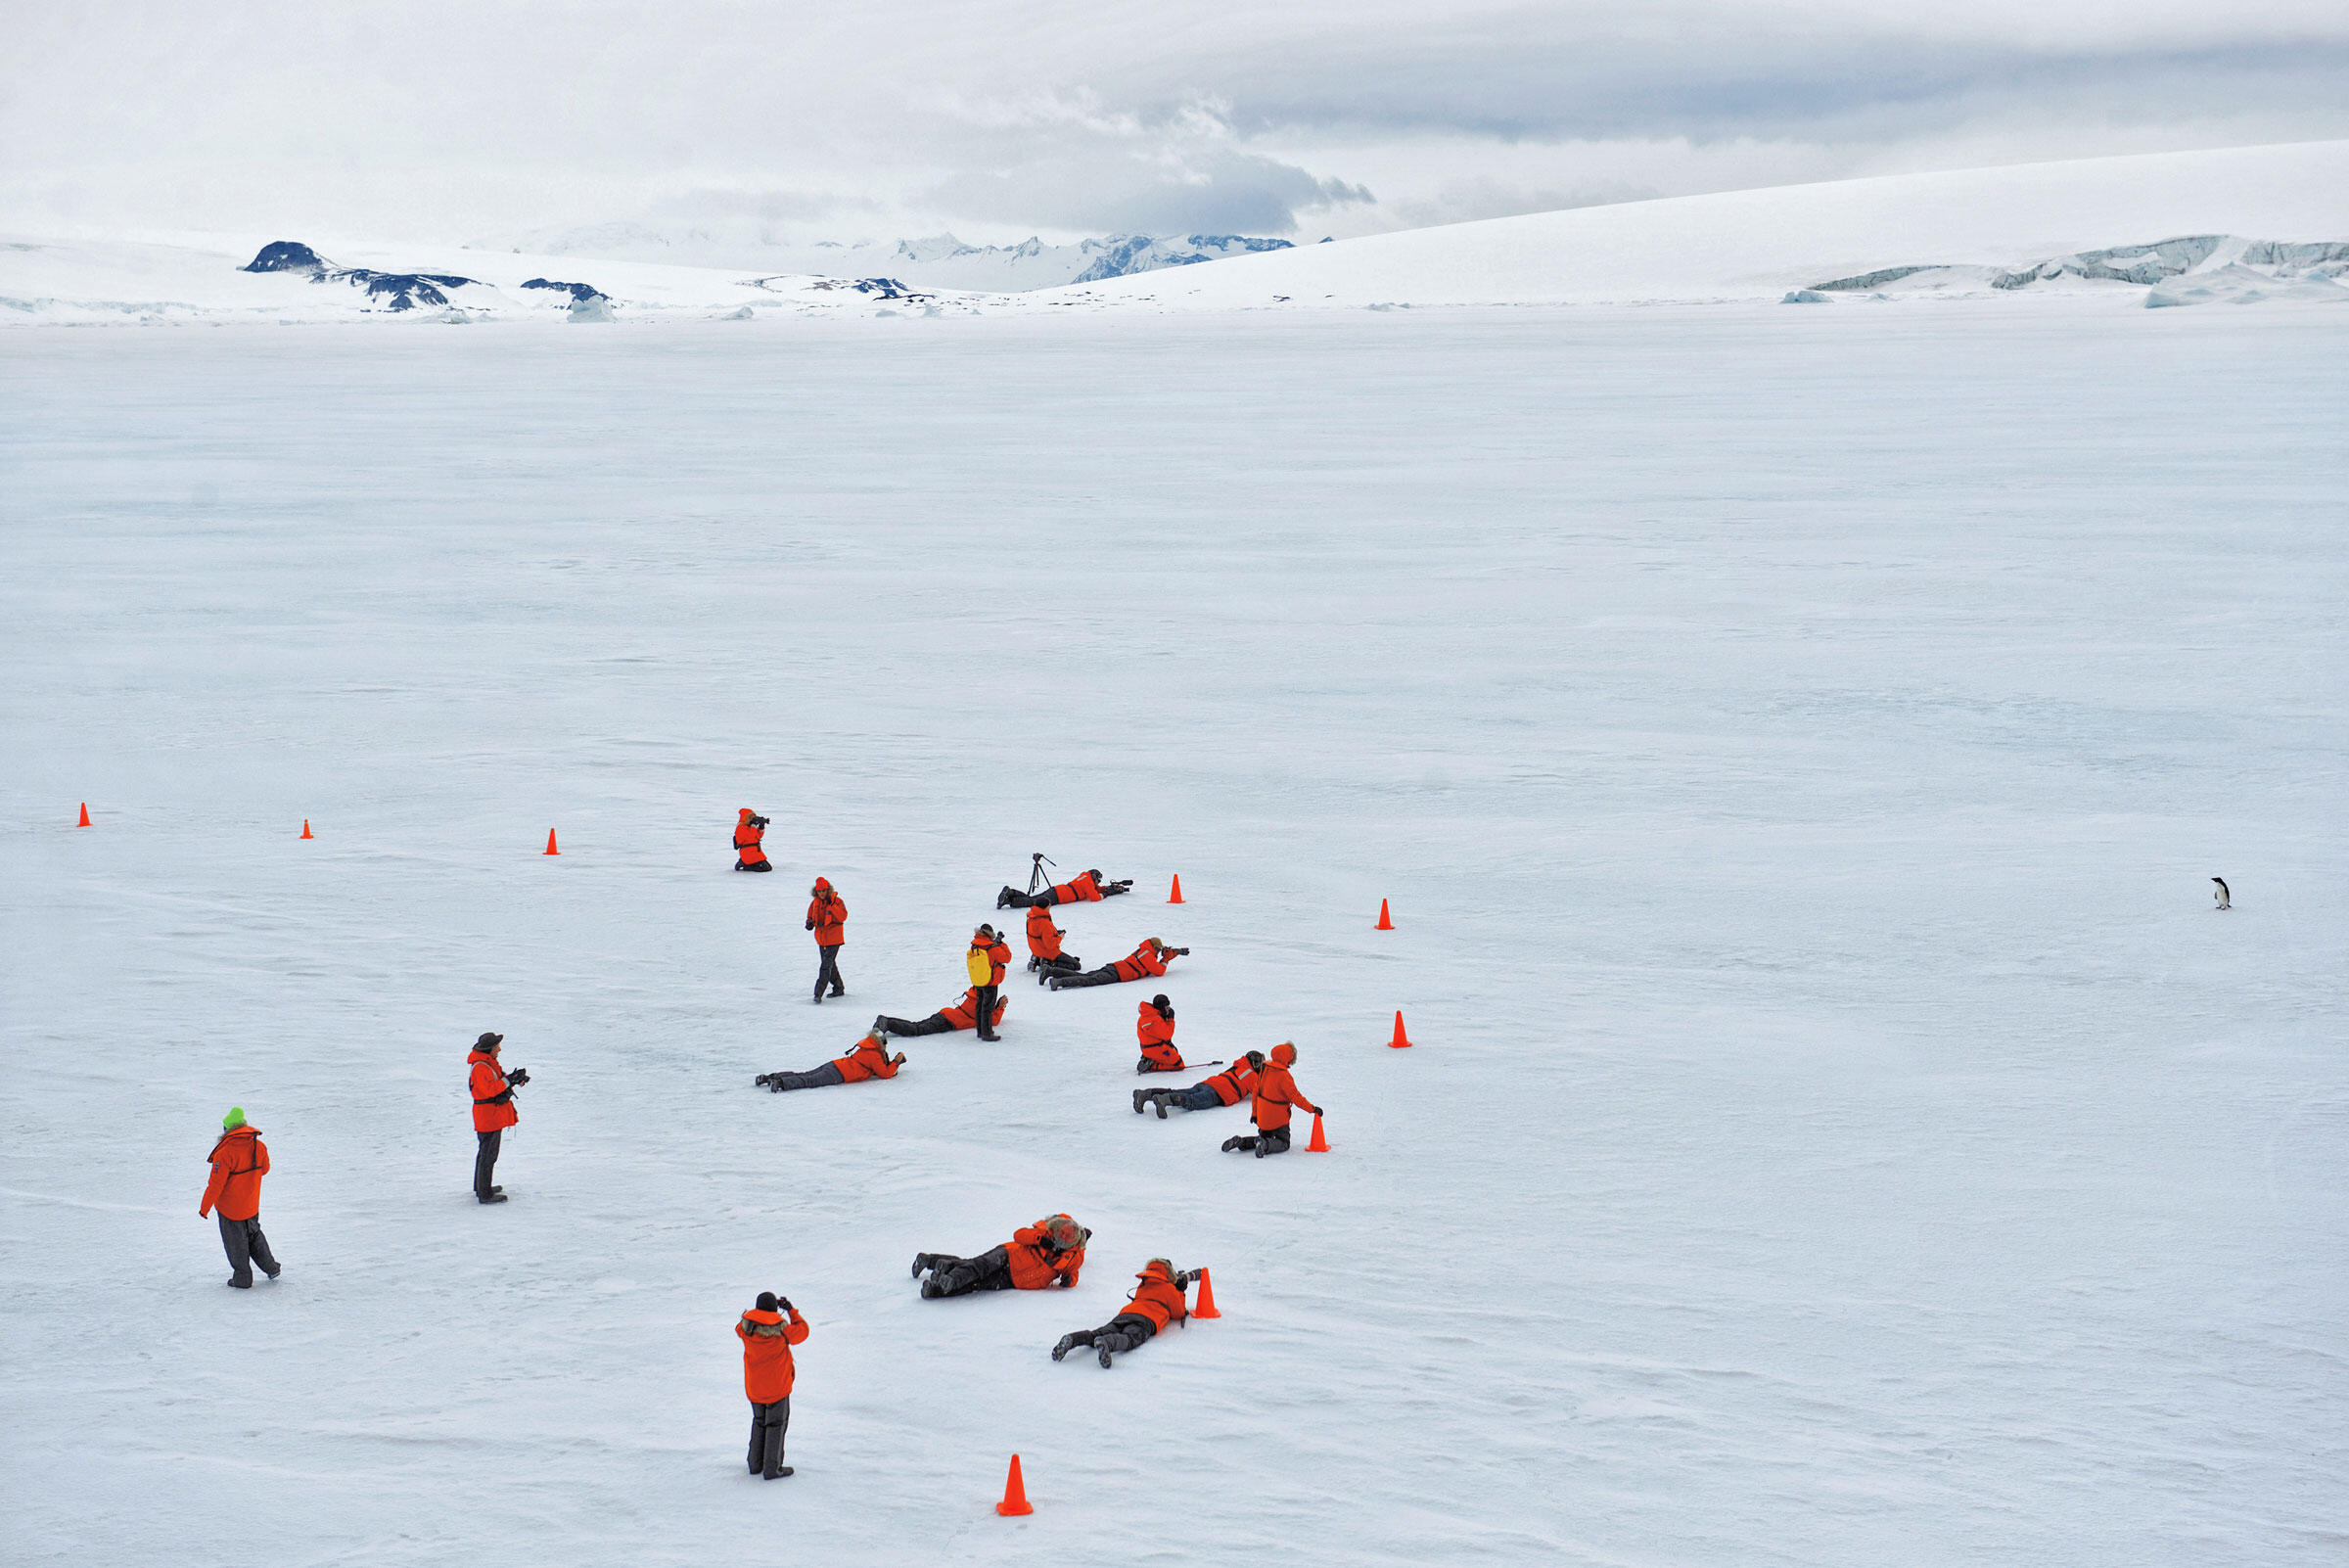 Ecotourists set up behind orange safety cones to photograph a lone Adélie Penguin waddling on the ice in the Weddell Sea, Antarctic Sound. Antarctica. Sisse Brimberg & Cotton Coulson/National Geographic